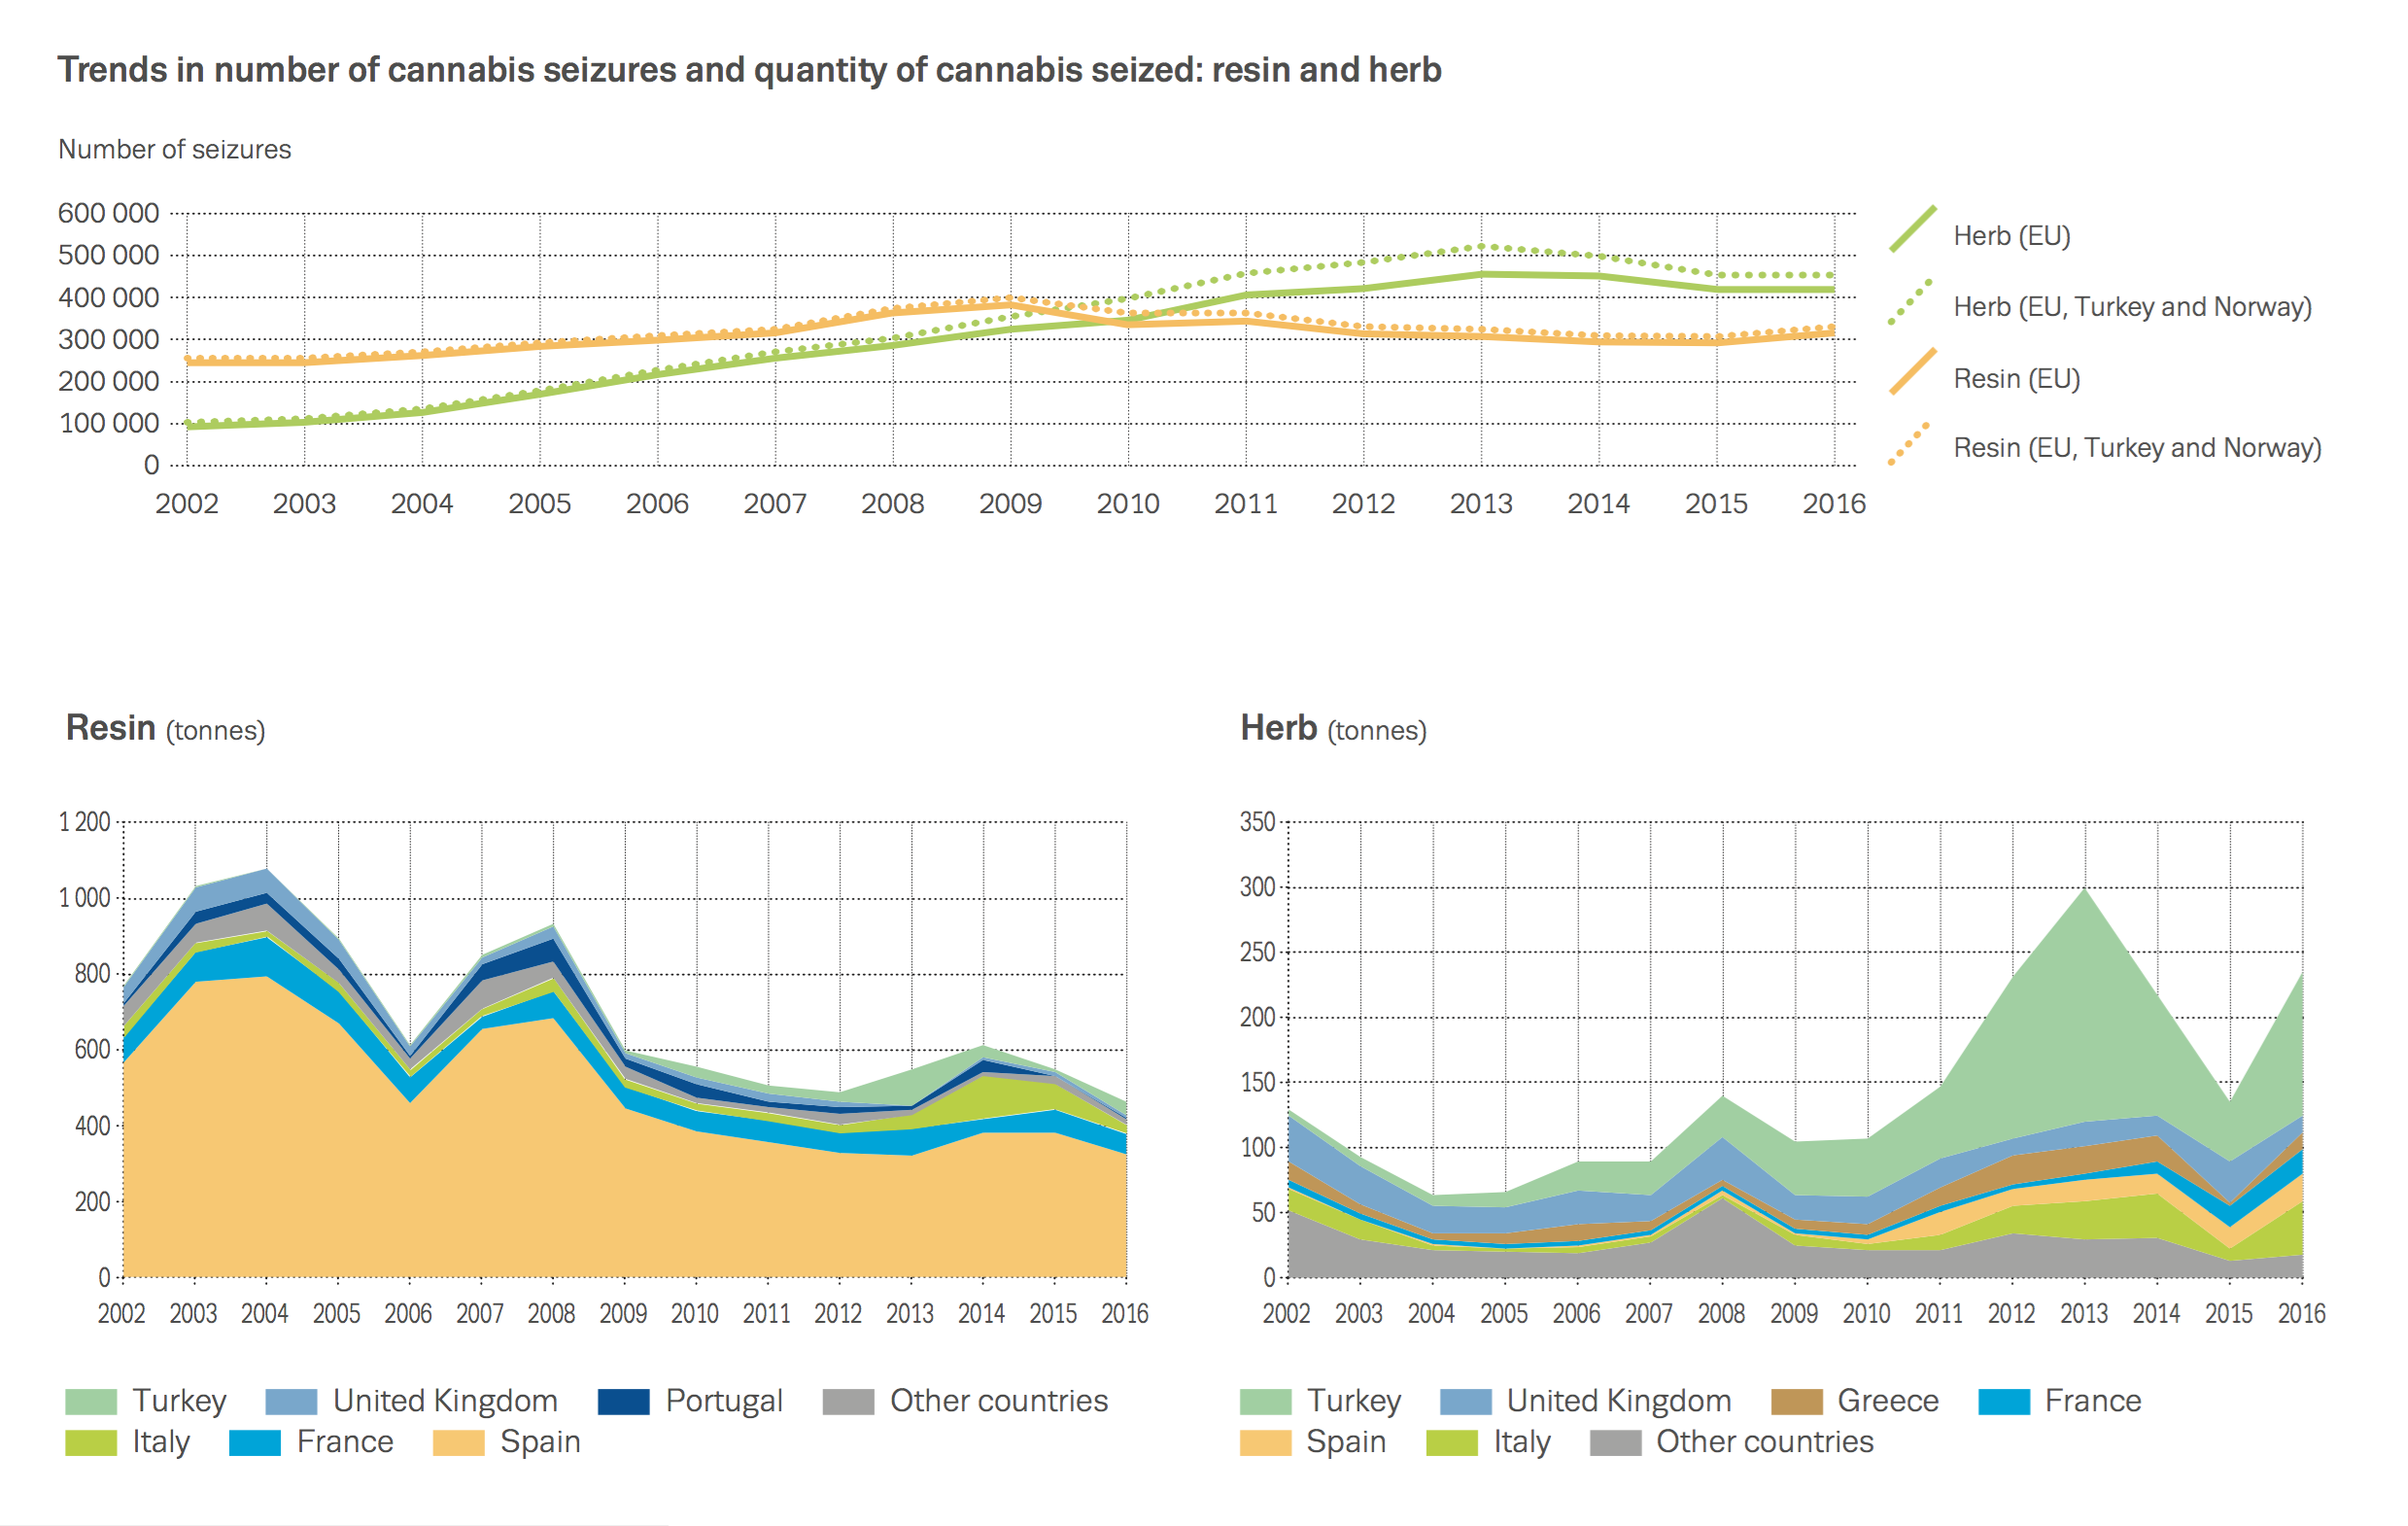 Chart showing trends in number of cannabis seizures and quantity of cannabis seized: resin and herb